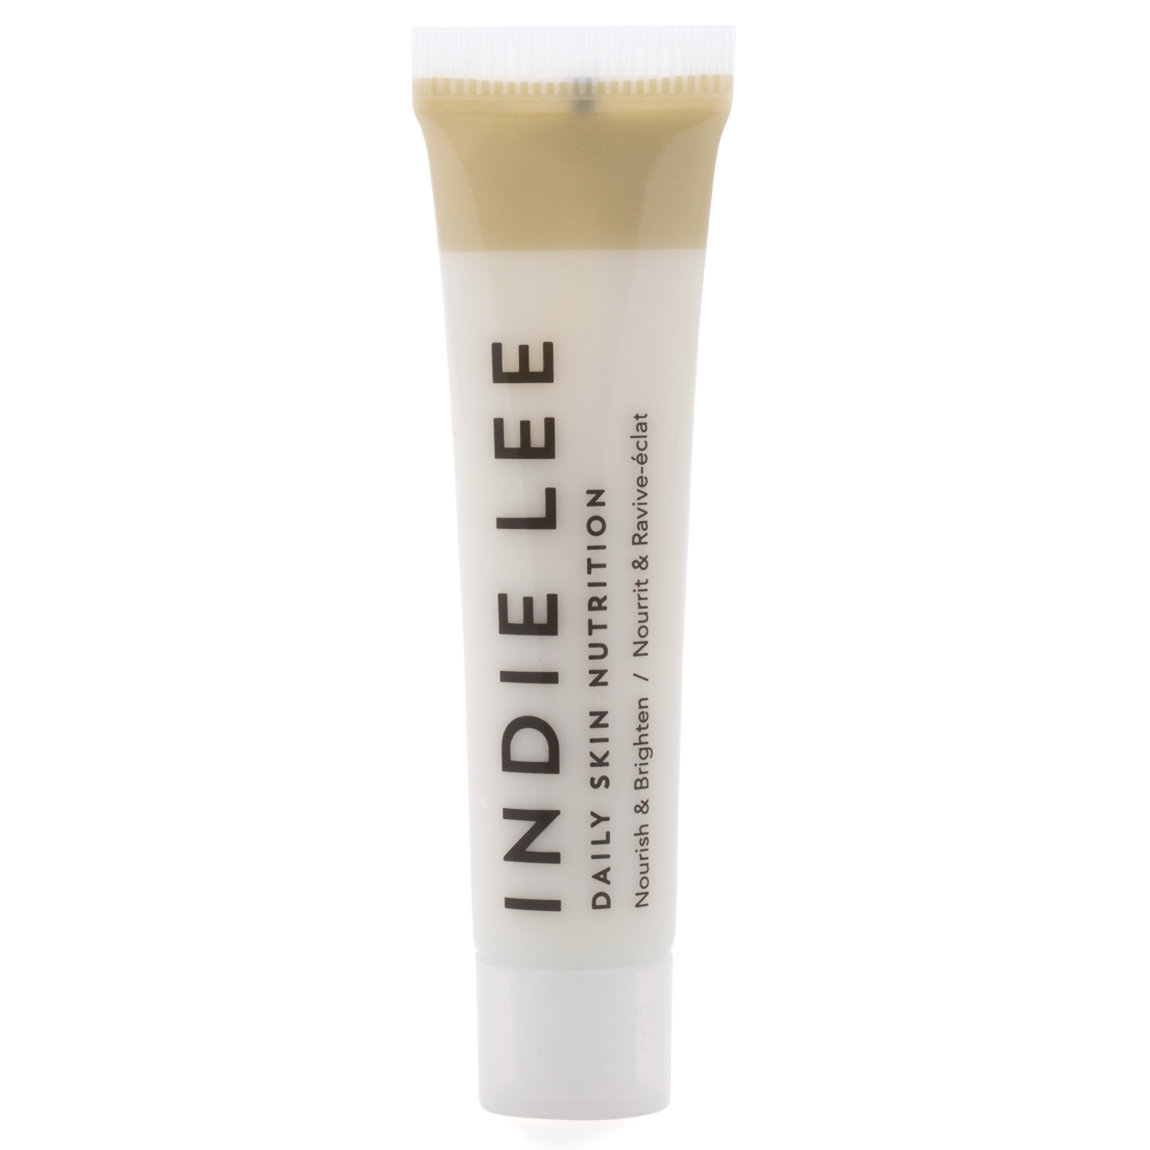 Indie Lee Daily Skin Nutrition 10 ml product smear.